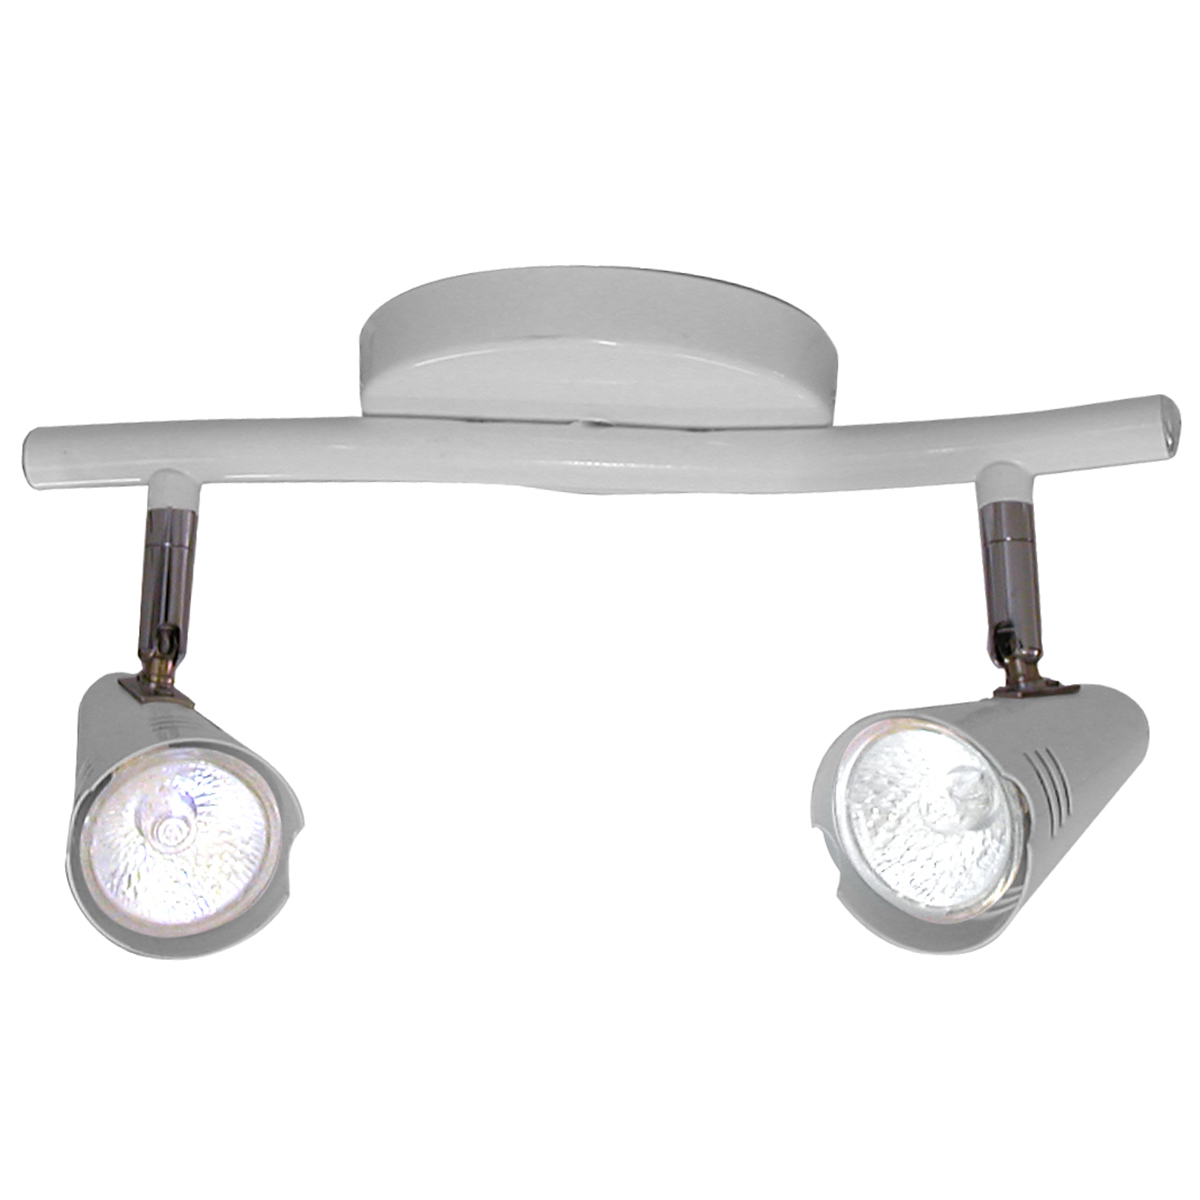 Spot Track Lince Aco Regulavel Base Gu-10 2 Lamp. Max. 50w Branco